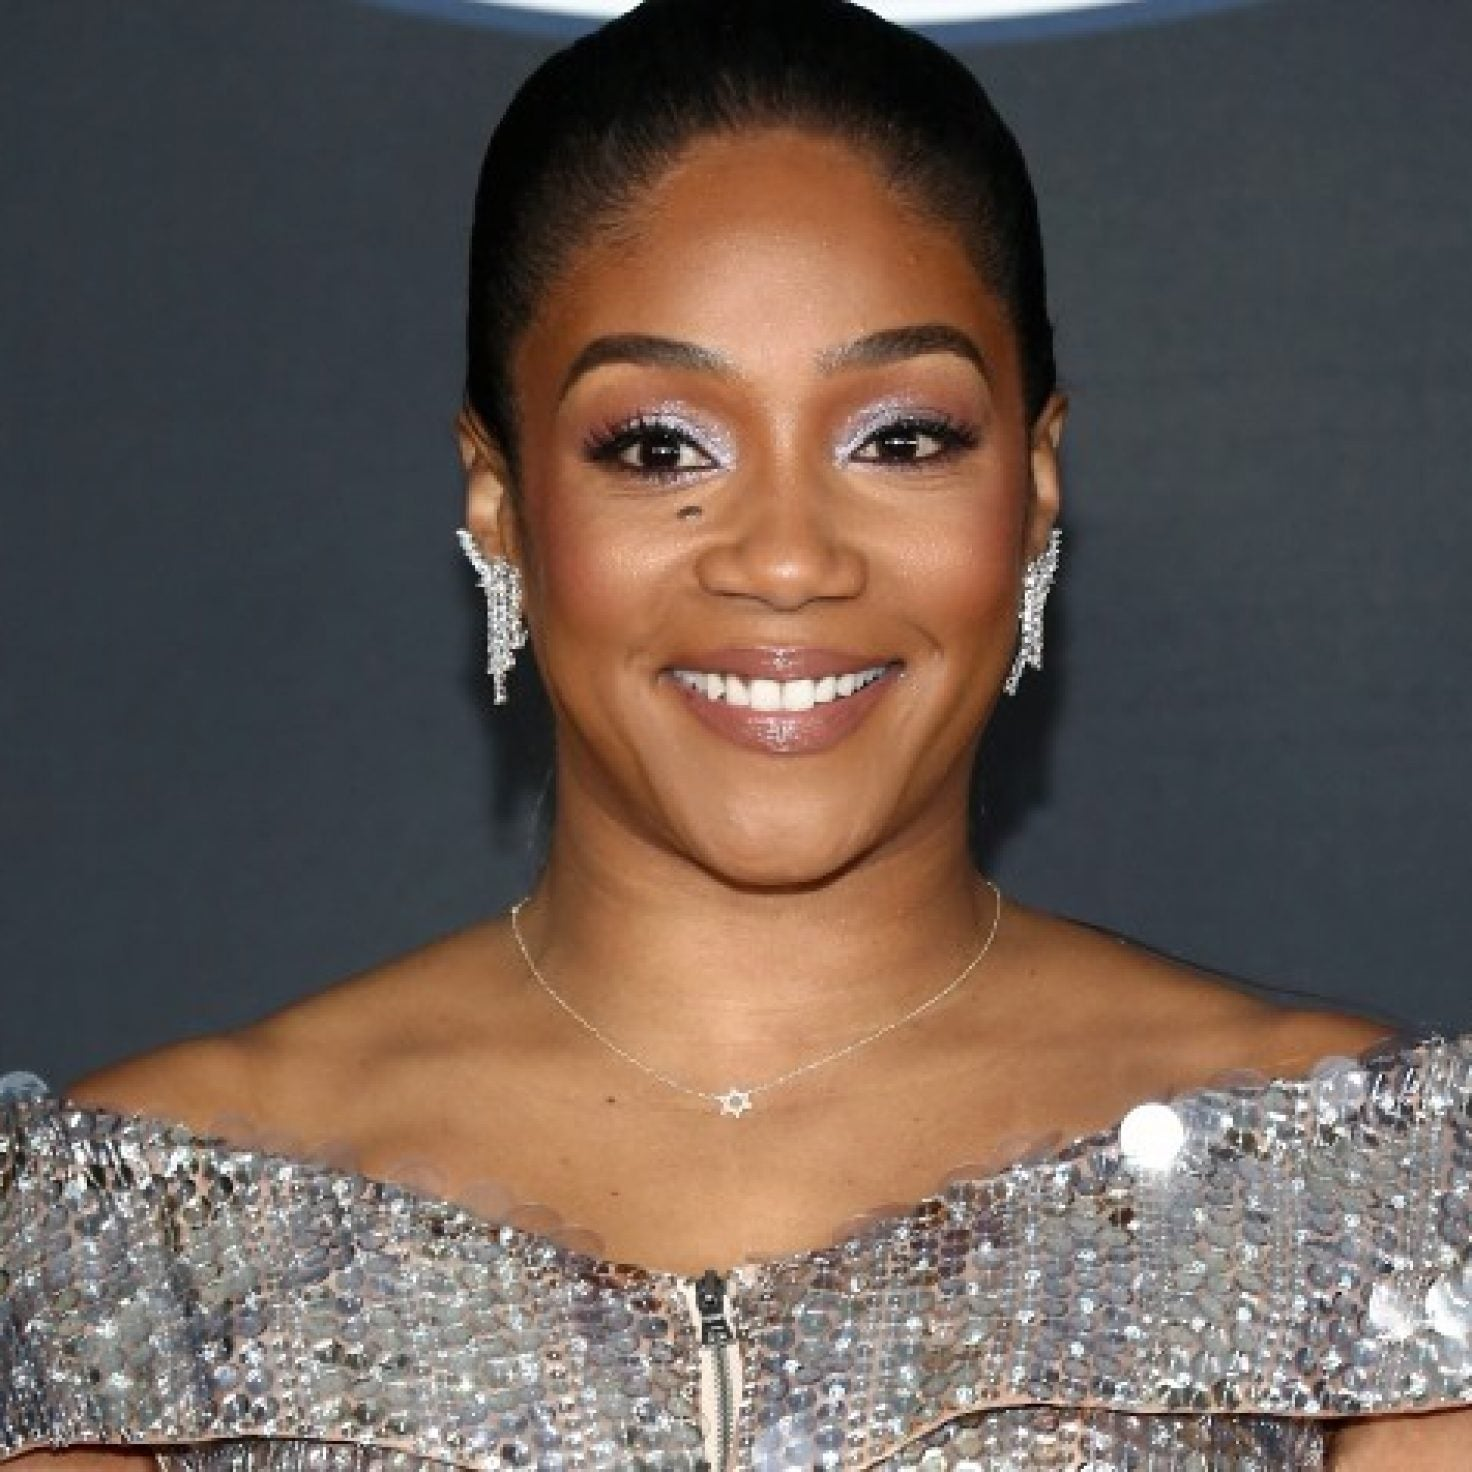 Tiffany Haddish Explains The Advantages Of Having Short Hair